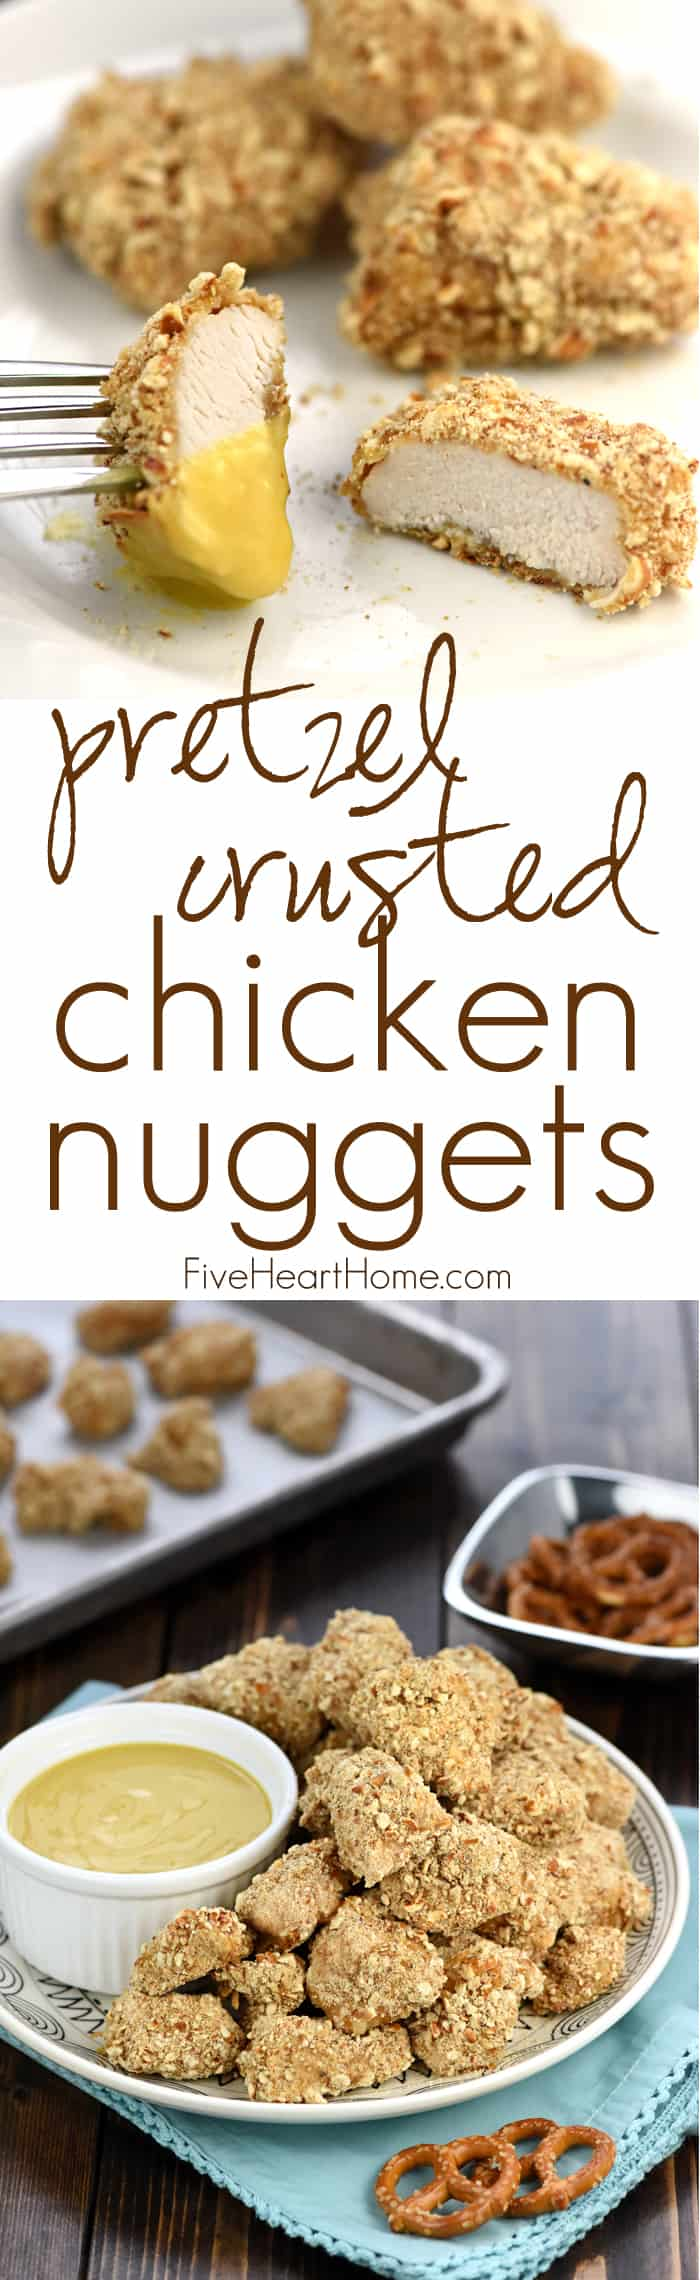 Pretzel-Crusted Chicken Nuggets with Honey Mustard Dipping Sauce ~ tender, juicy nuggets are baked to perfection and served with a lightened-up, Greek yogurt-based sauce for a simple, yummy, family-pleasing dinner! | FiveHeartHome.com